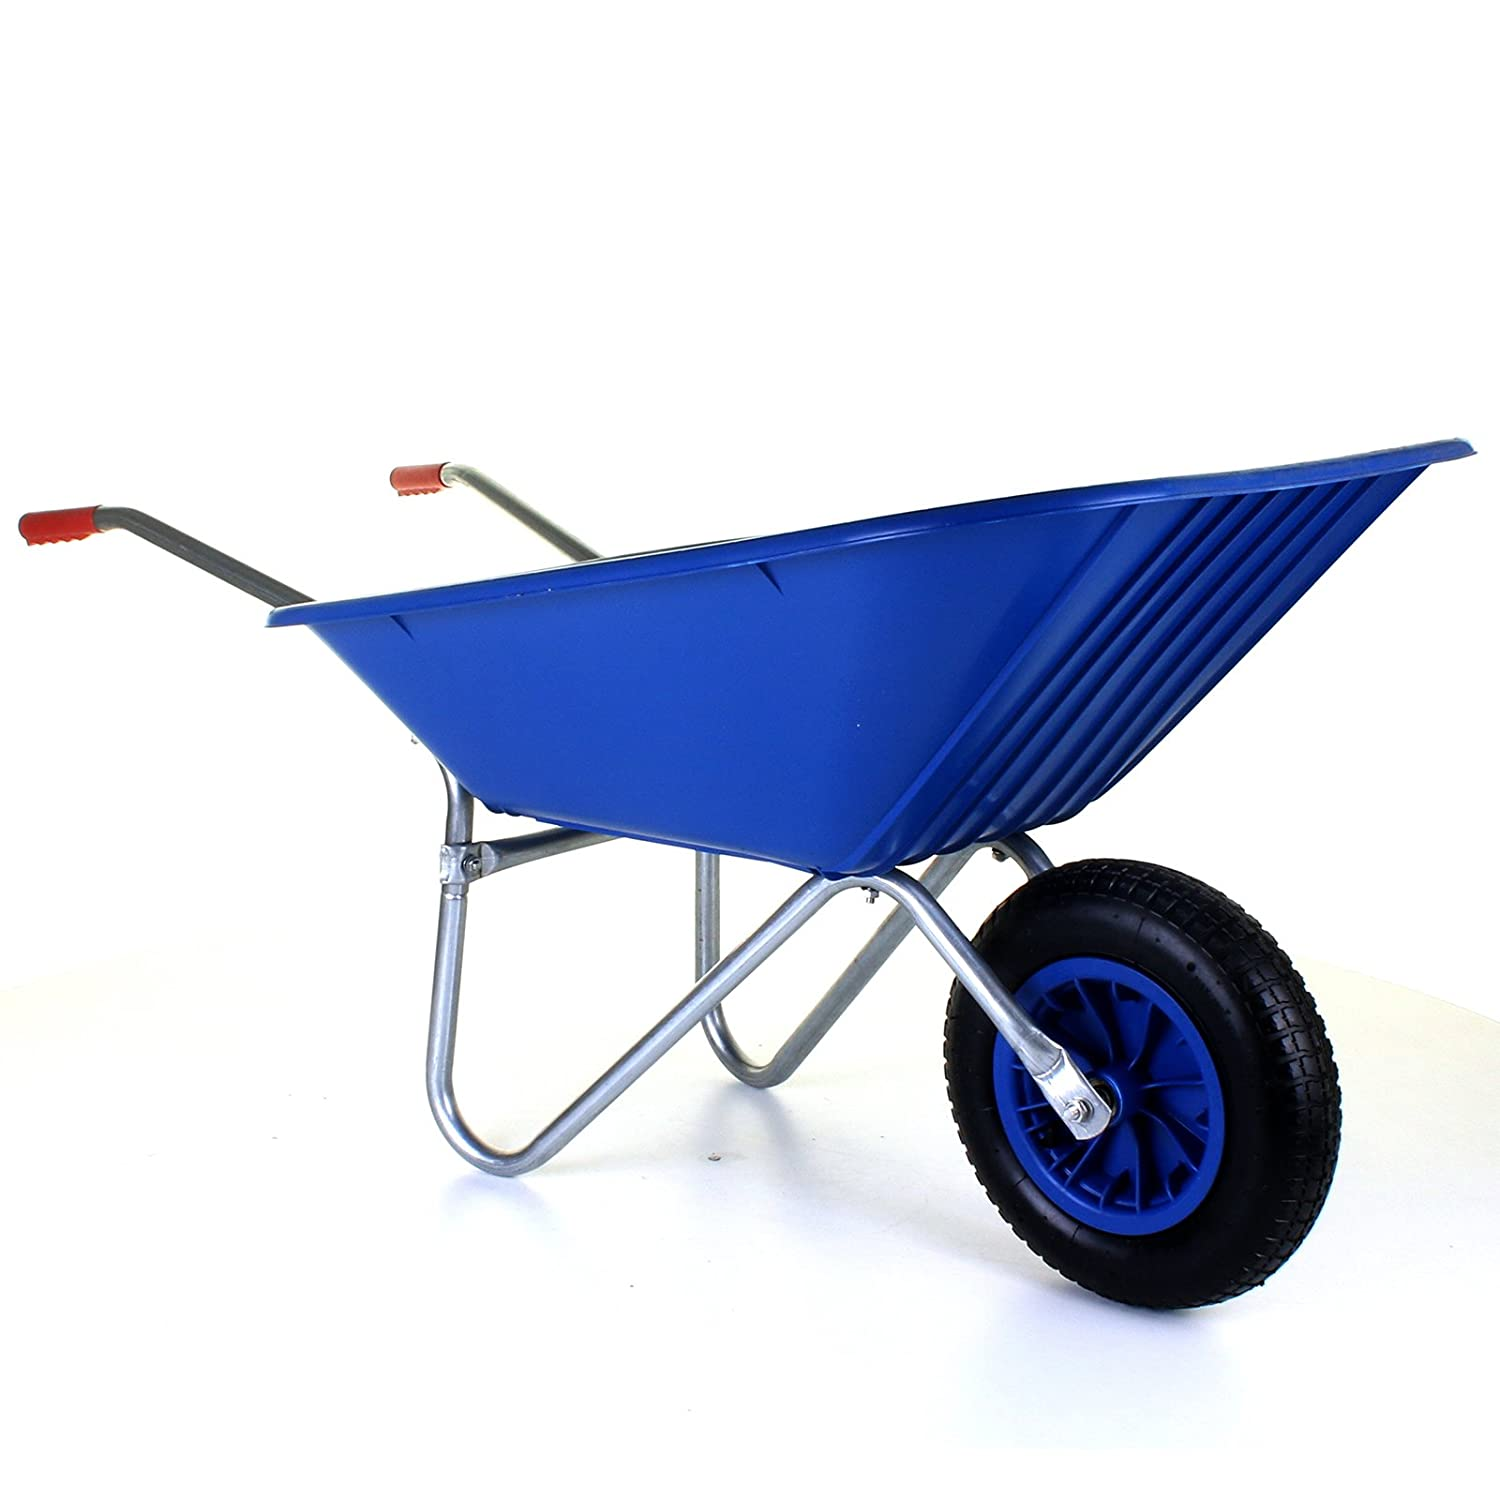 Marko Tools 85L Plastic Wheelbarrow Heavy Duty Outdoor Garden Equestrian Black Blue Green (Blue)